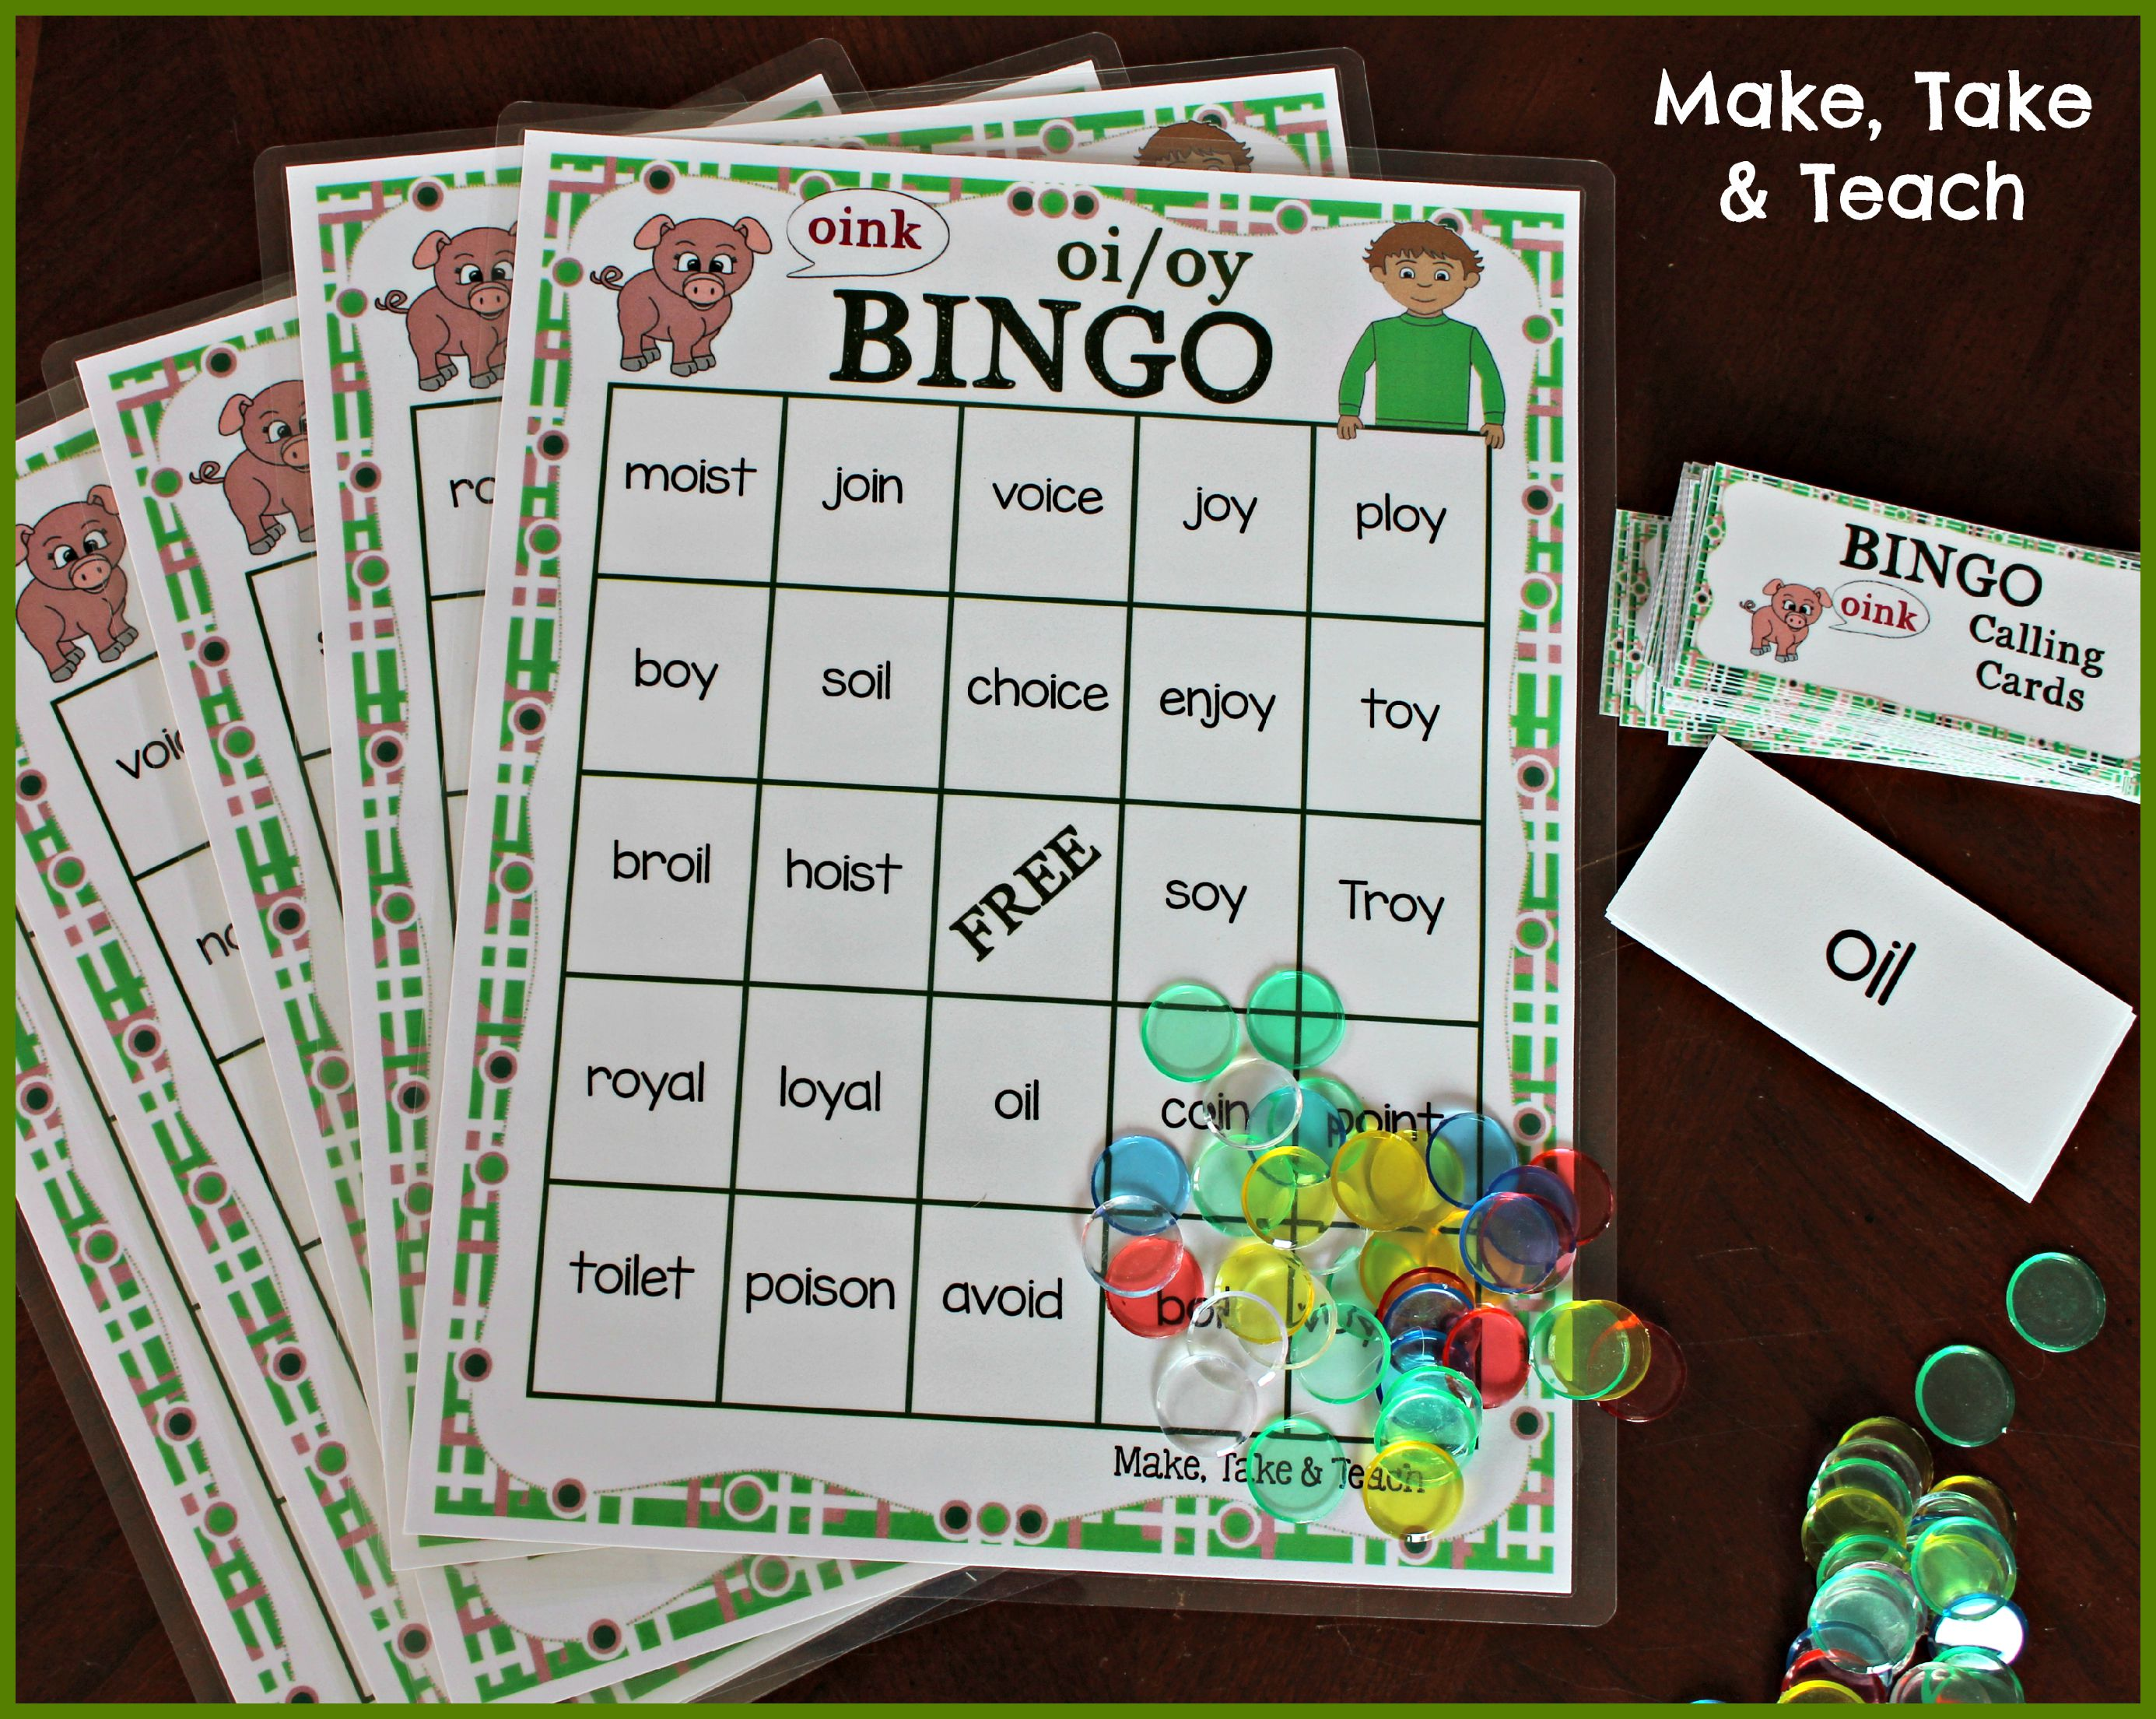 worksheet Words With Oi activities for teaching oi oy make take teach i love this activity as its a fast paced game which offers multiple practice opportunities reading the words students try to be first to